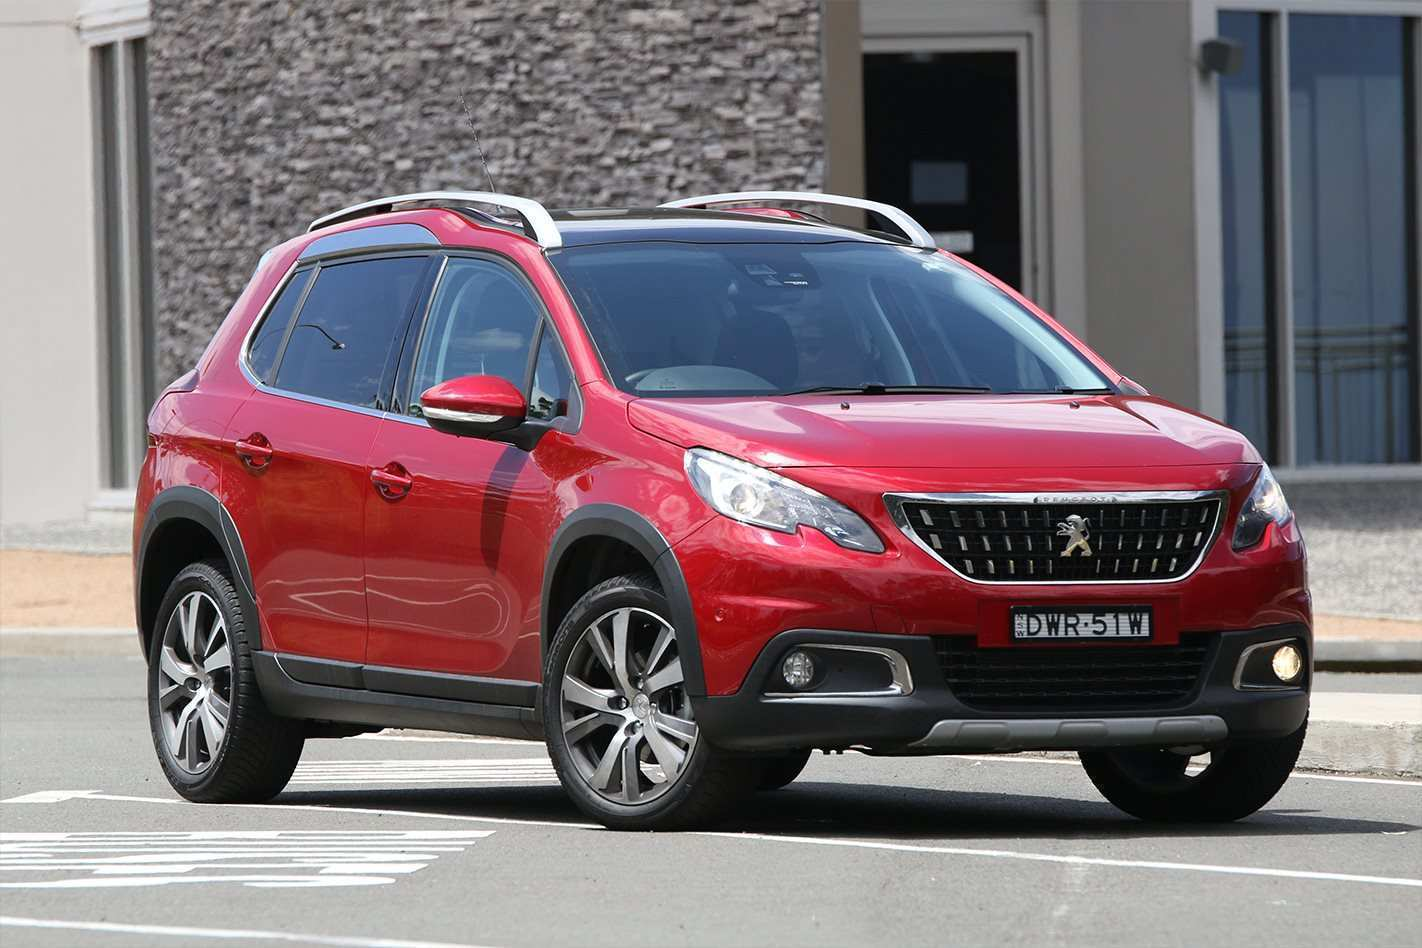 23 Best Review 2019 Peugeot 2008 Price and Review with 2019 Peugeot 2008